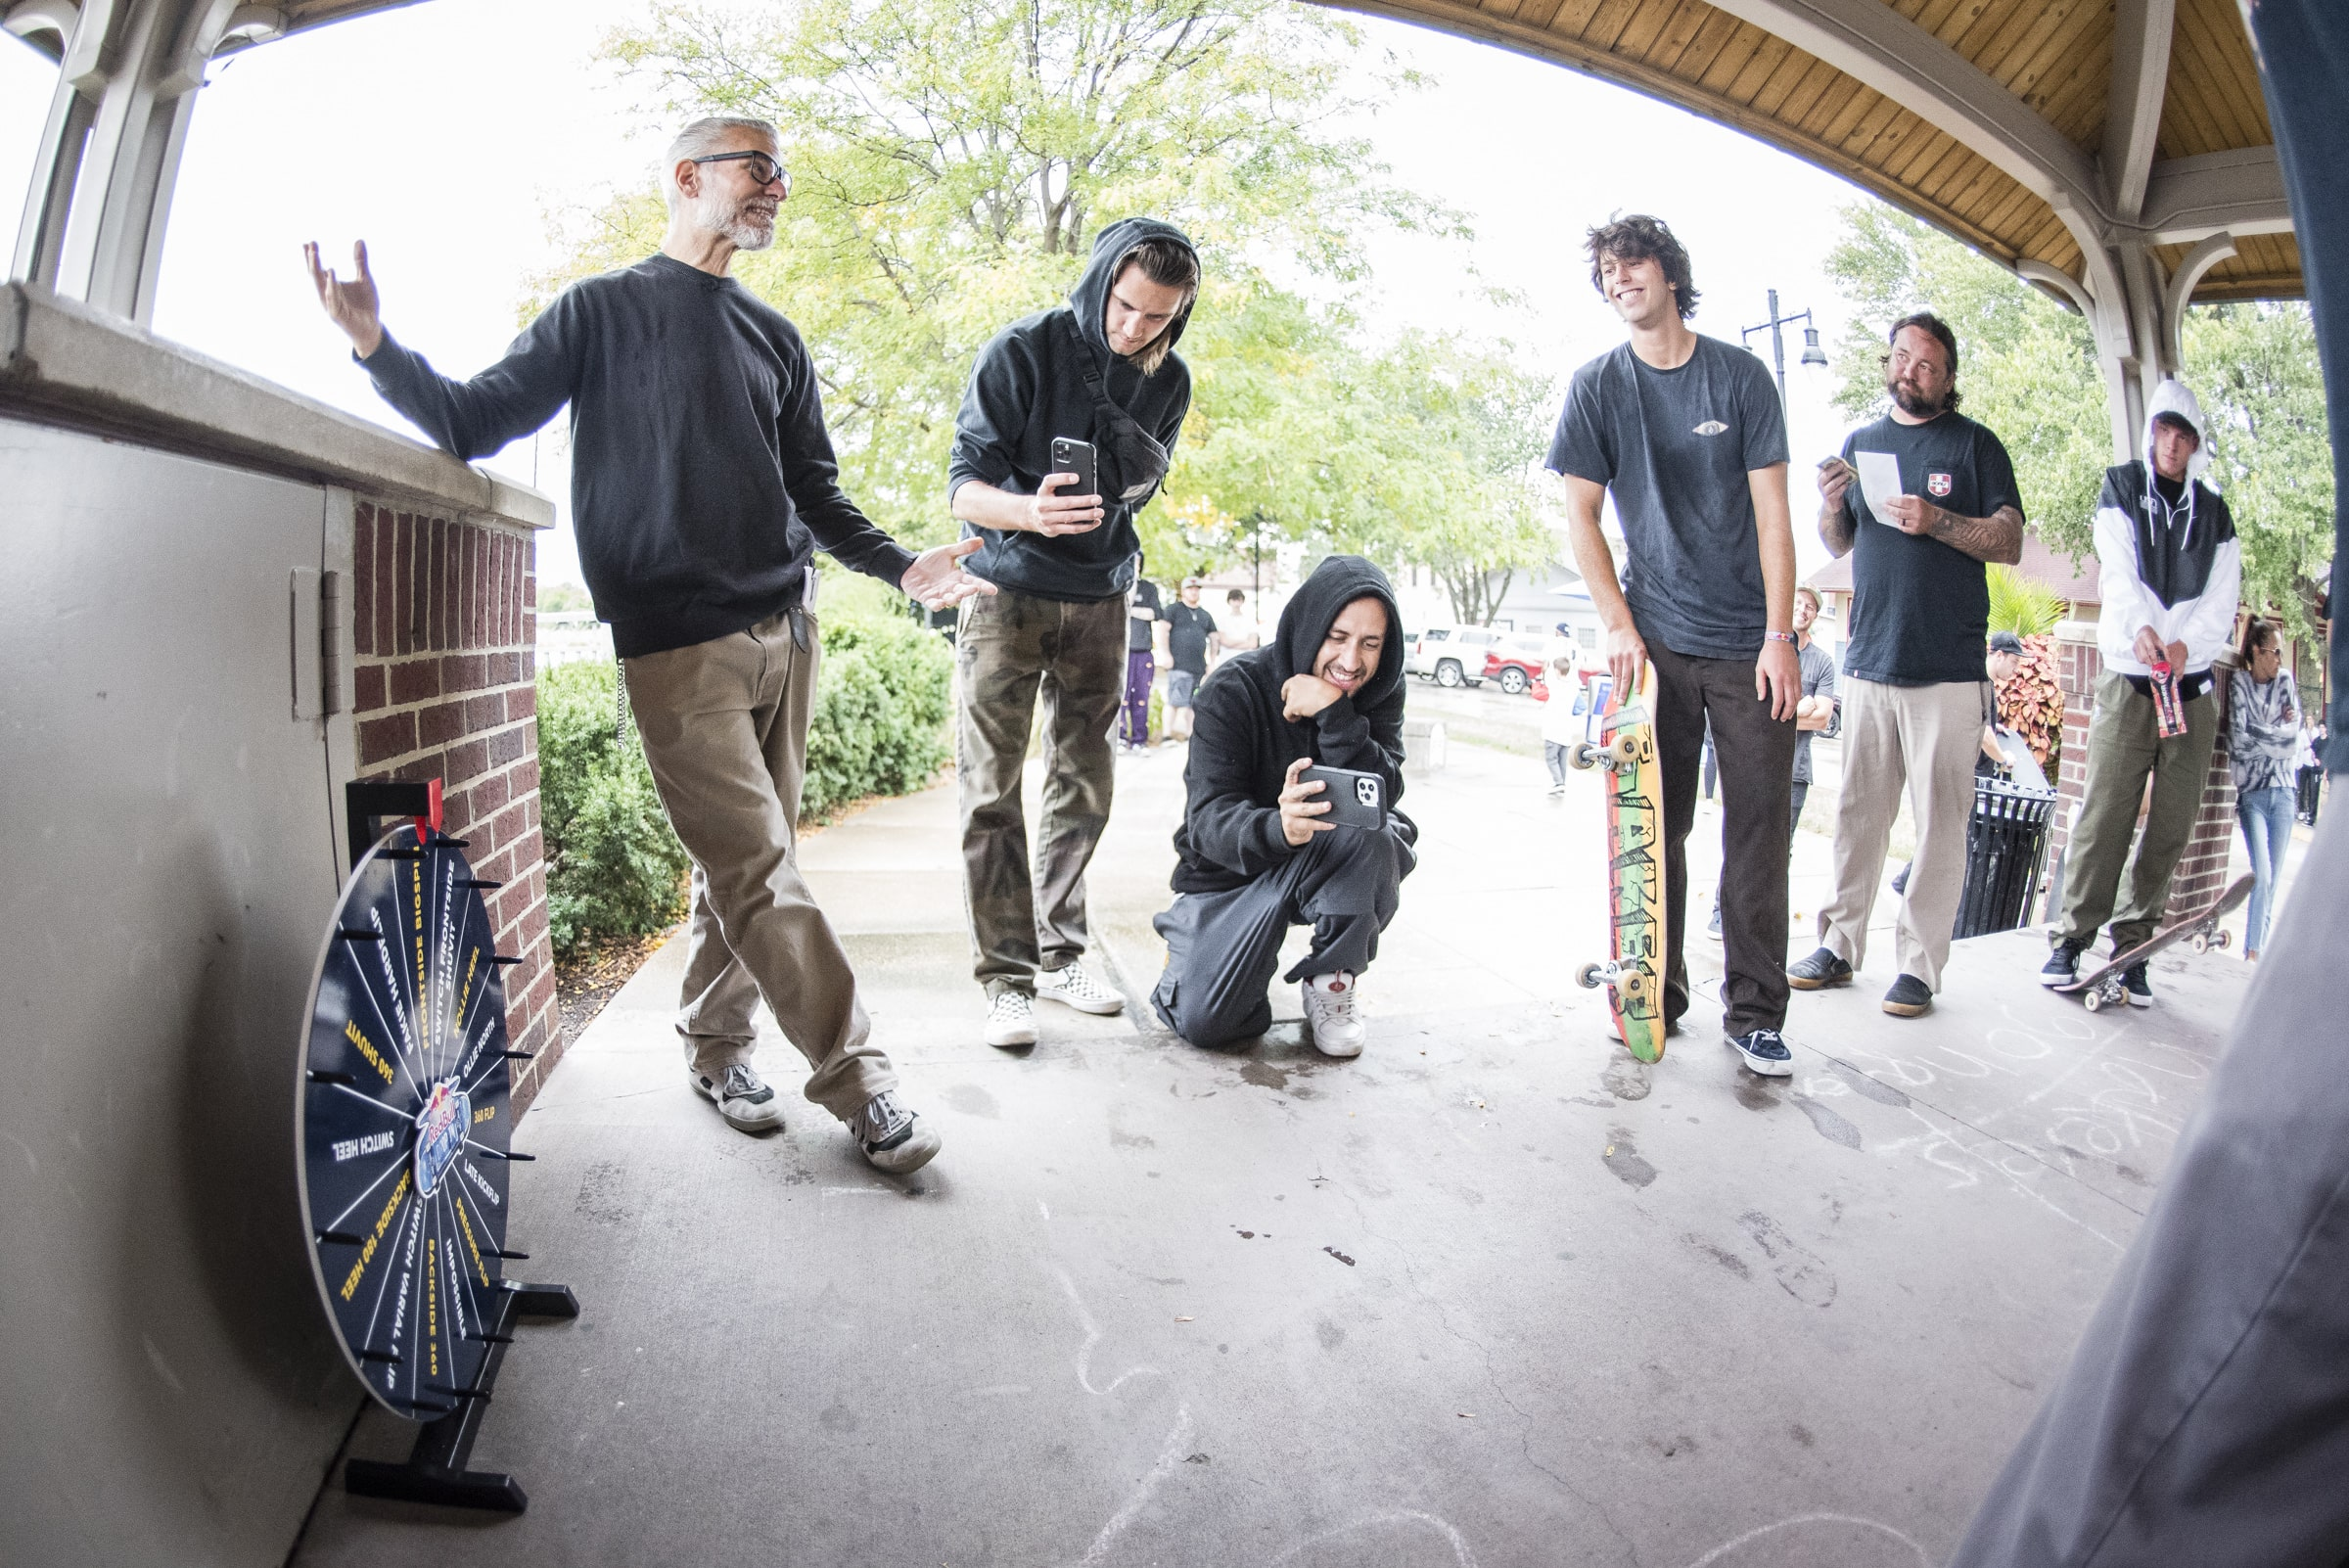 Des Moines Streetstyle Open 2021 - Spin the Wheel